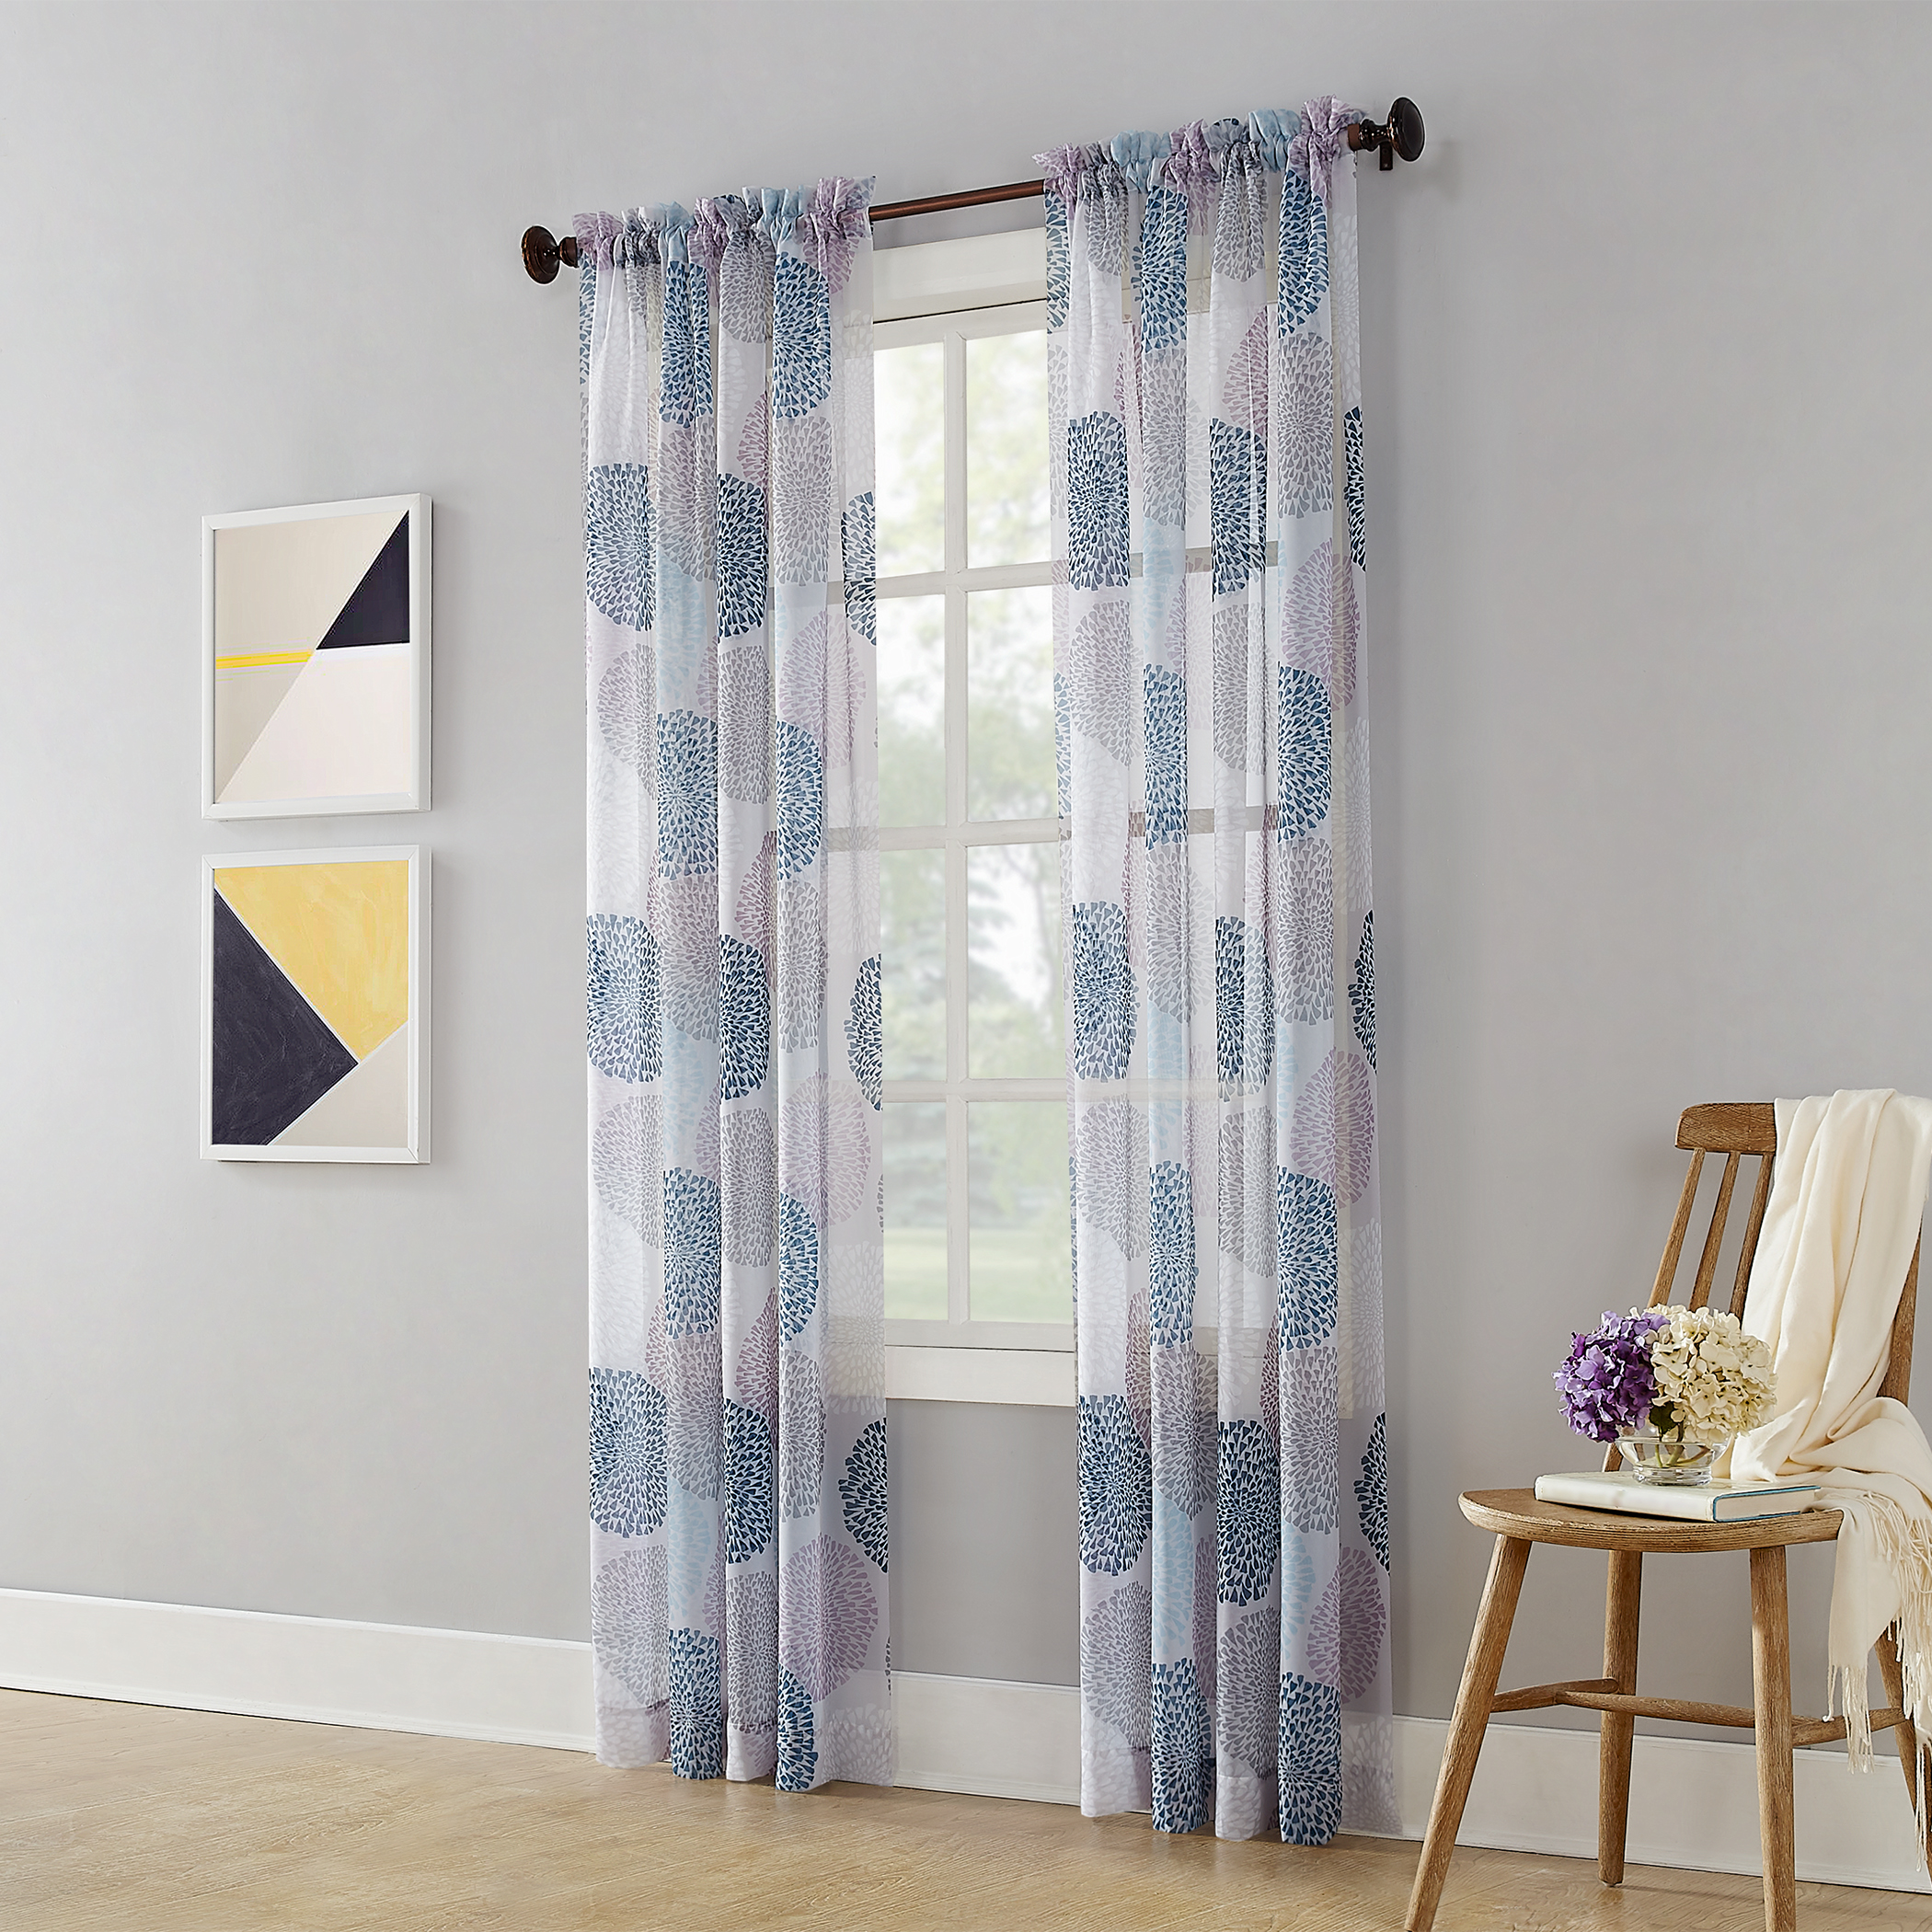 Mainstay Marjorie Sheer Voile Curtain Panel 59x84 Gray